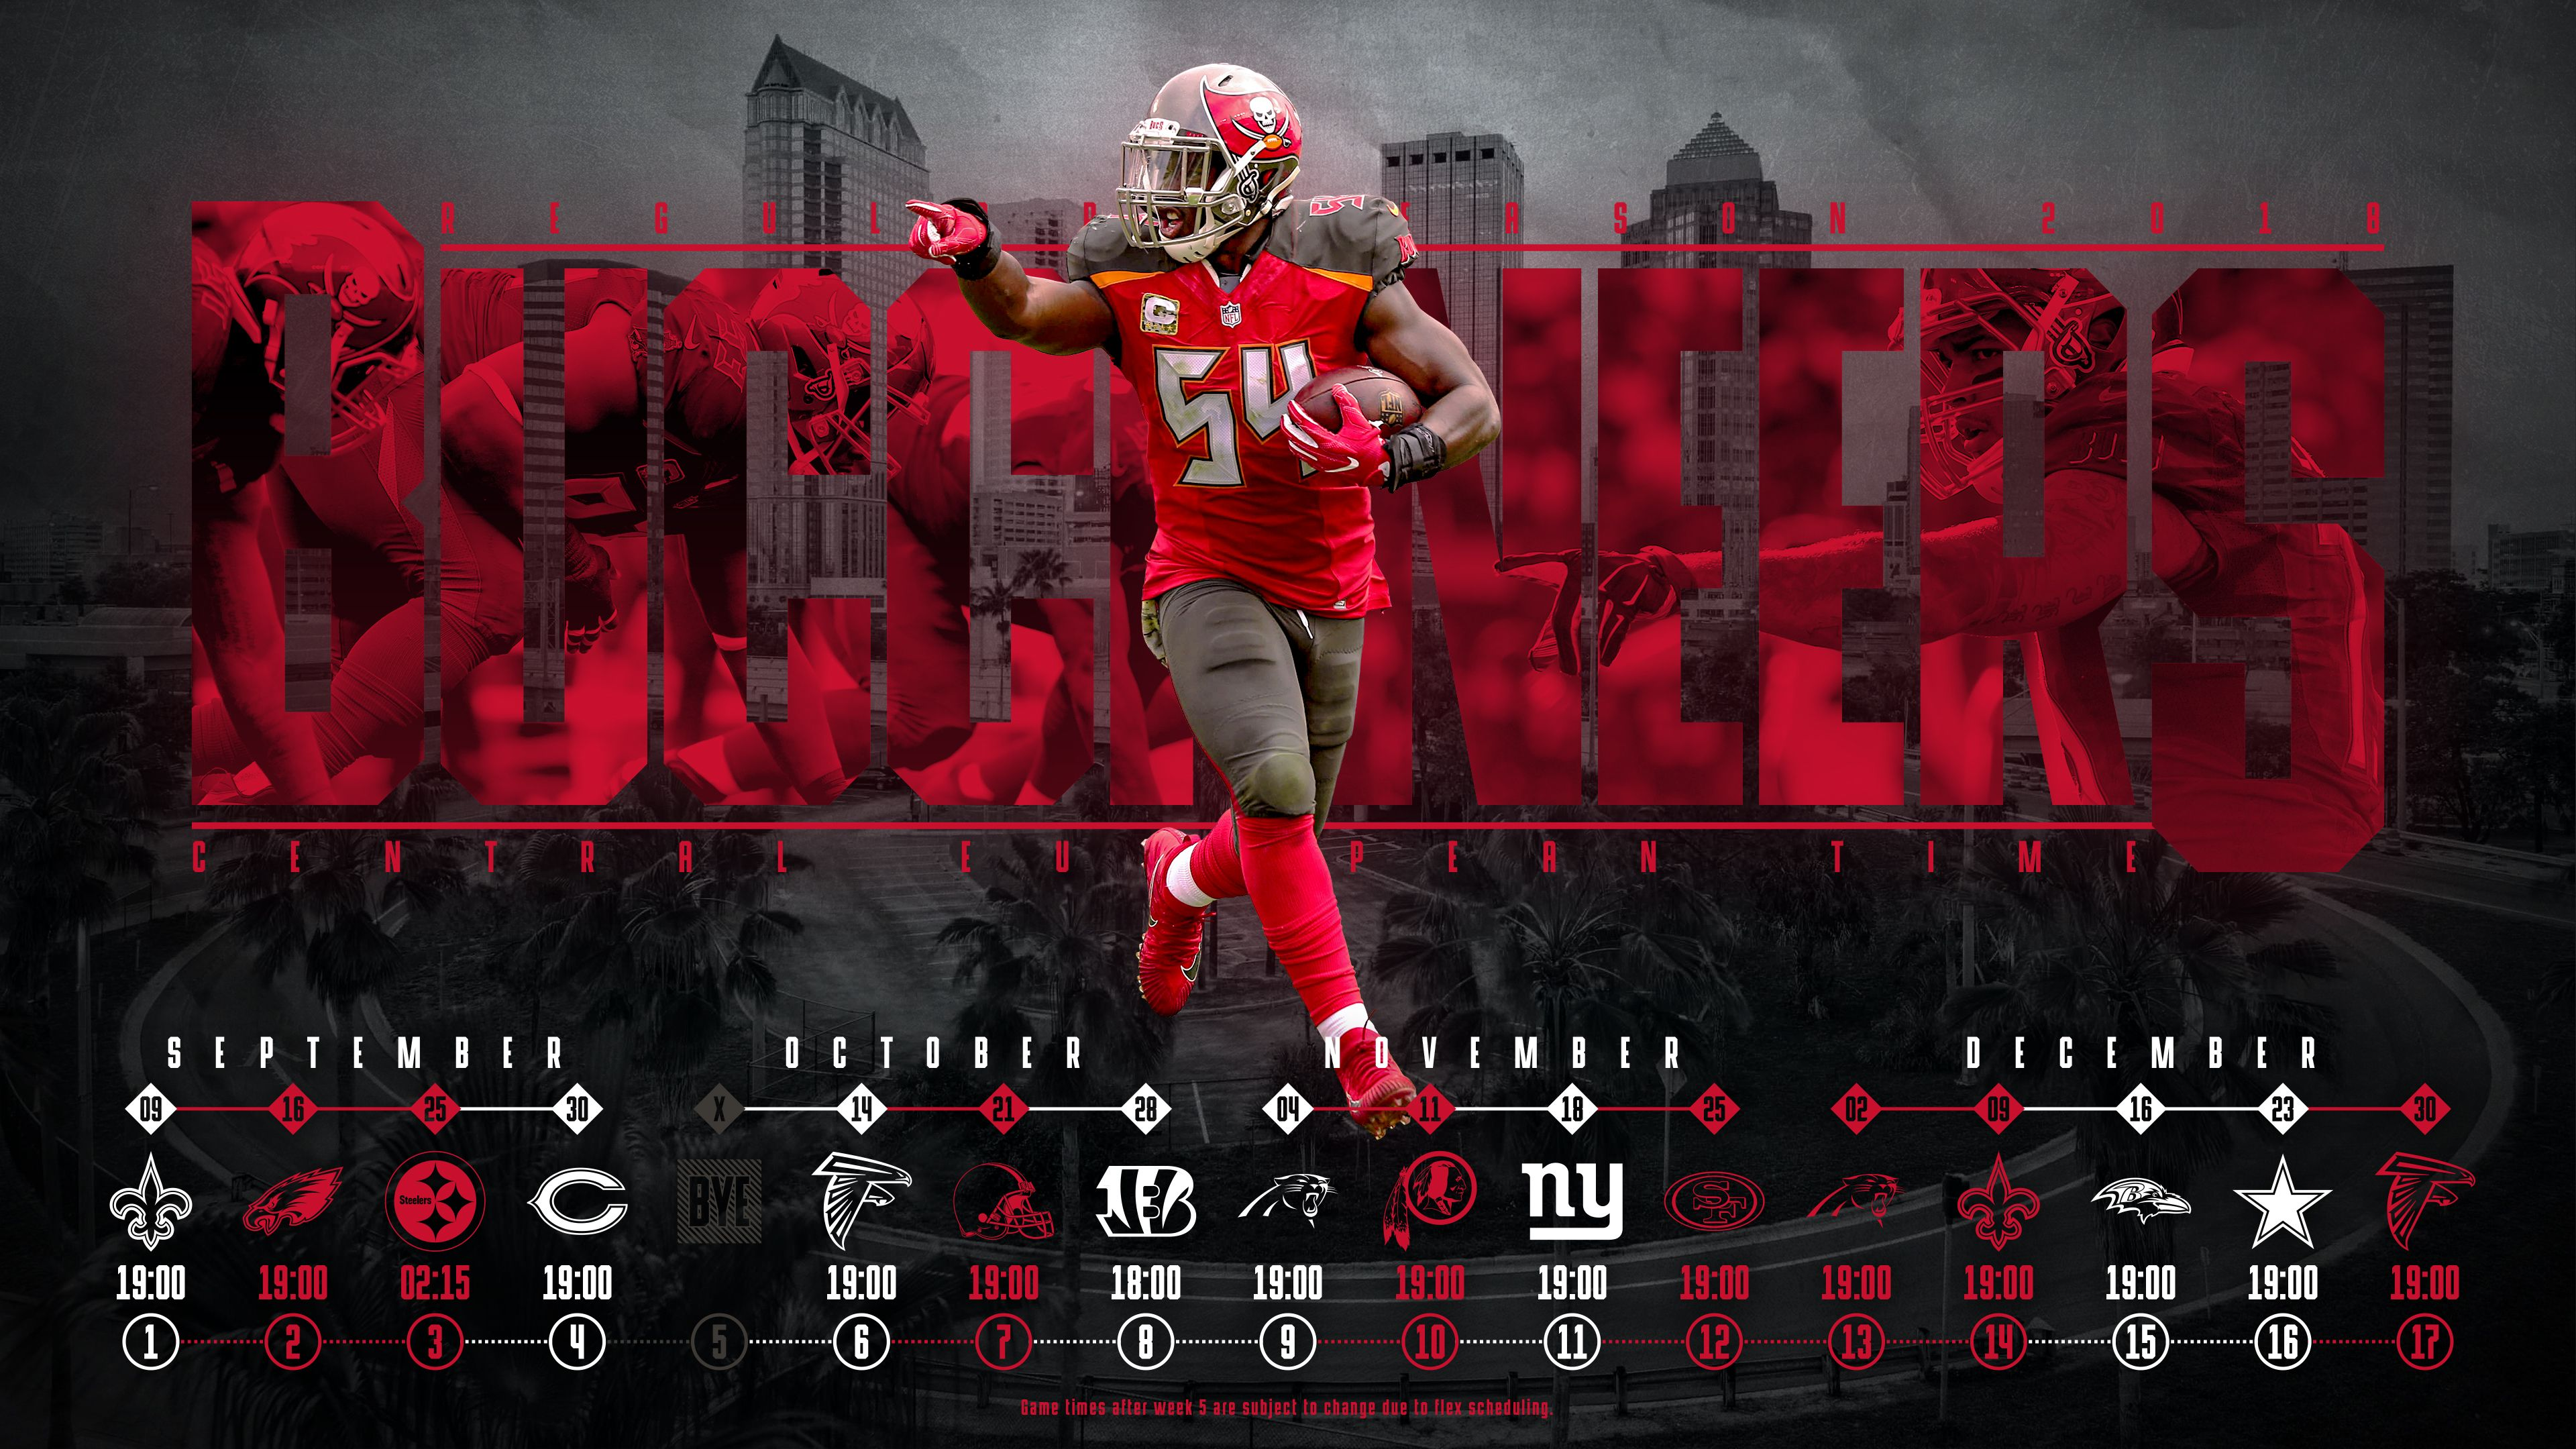 Schedule Wallpaper For The Tampa Bay Buccaneers Regular Season 2018 Central European Time Made By Tobler Gergo Tgersdiy Equipos Nfl Nfl Equipo